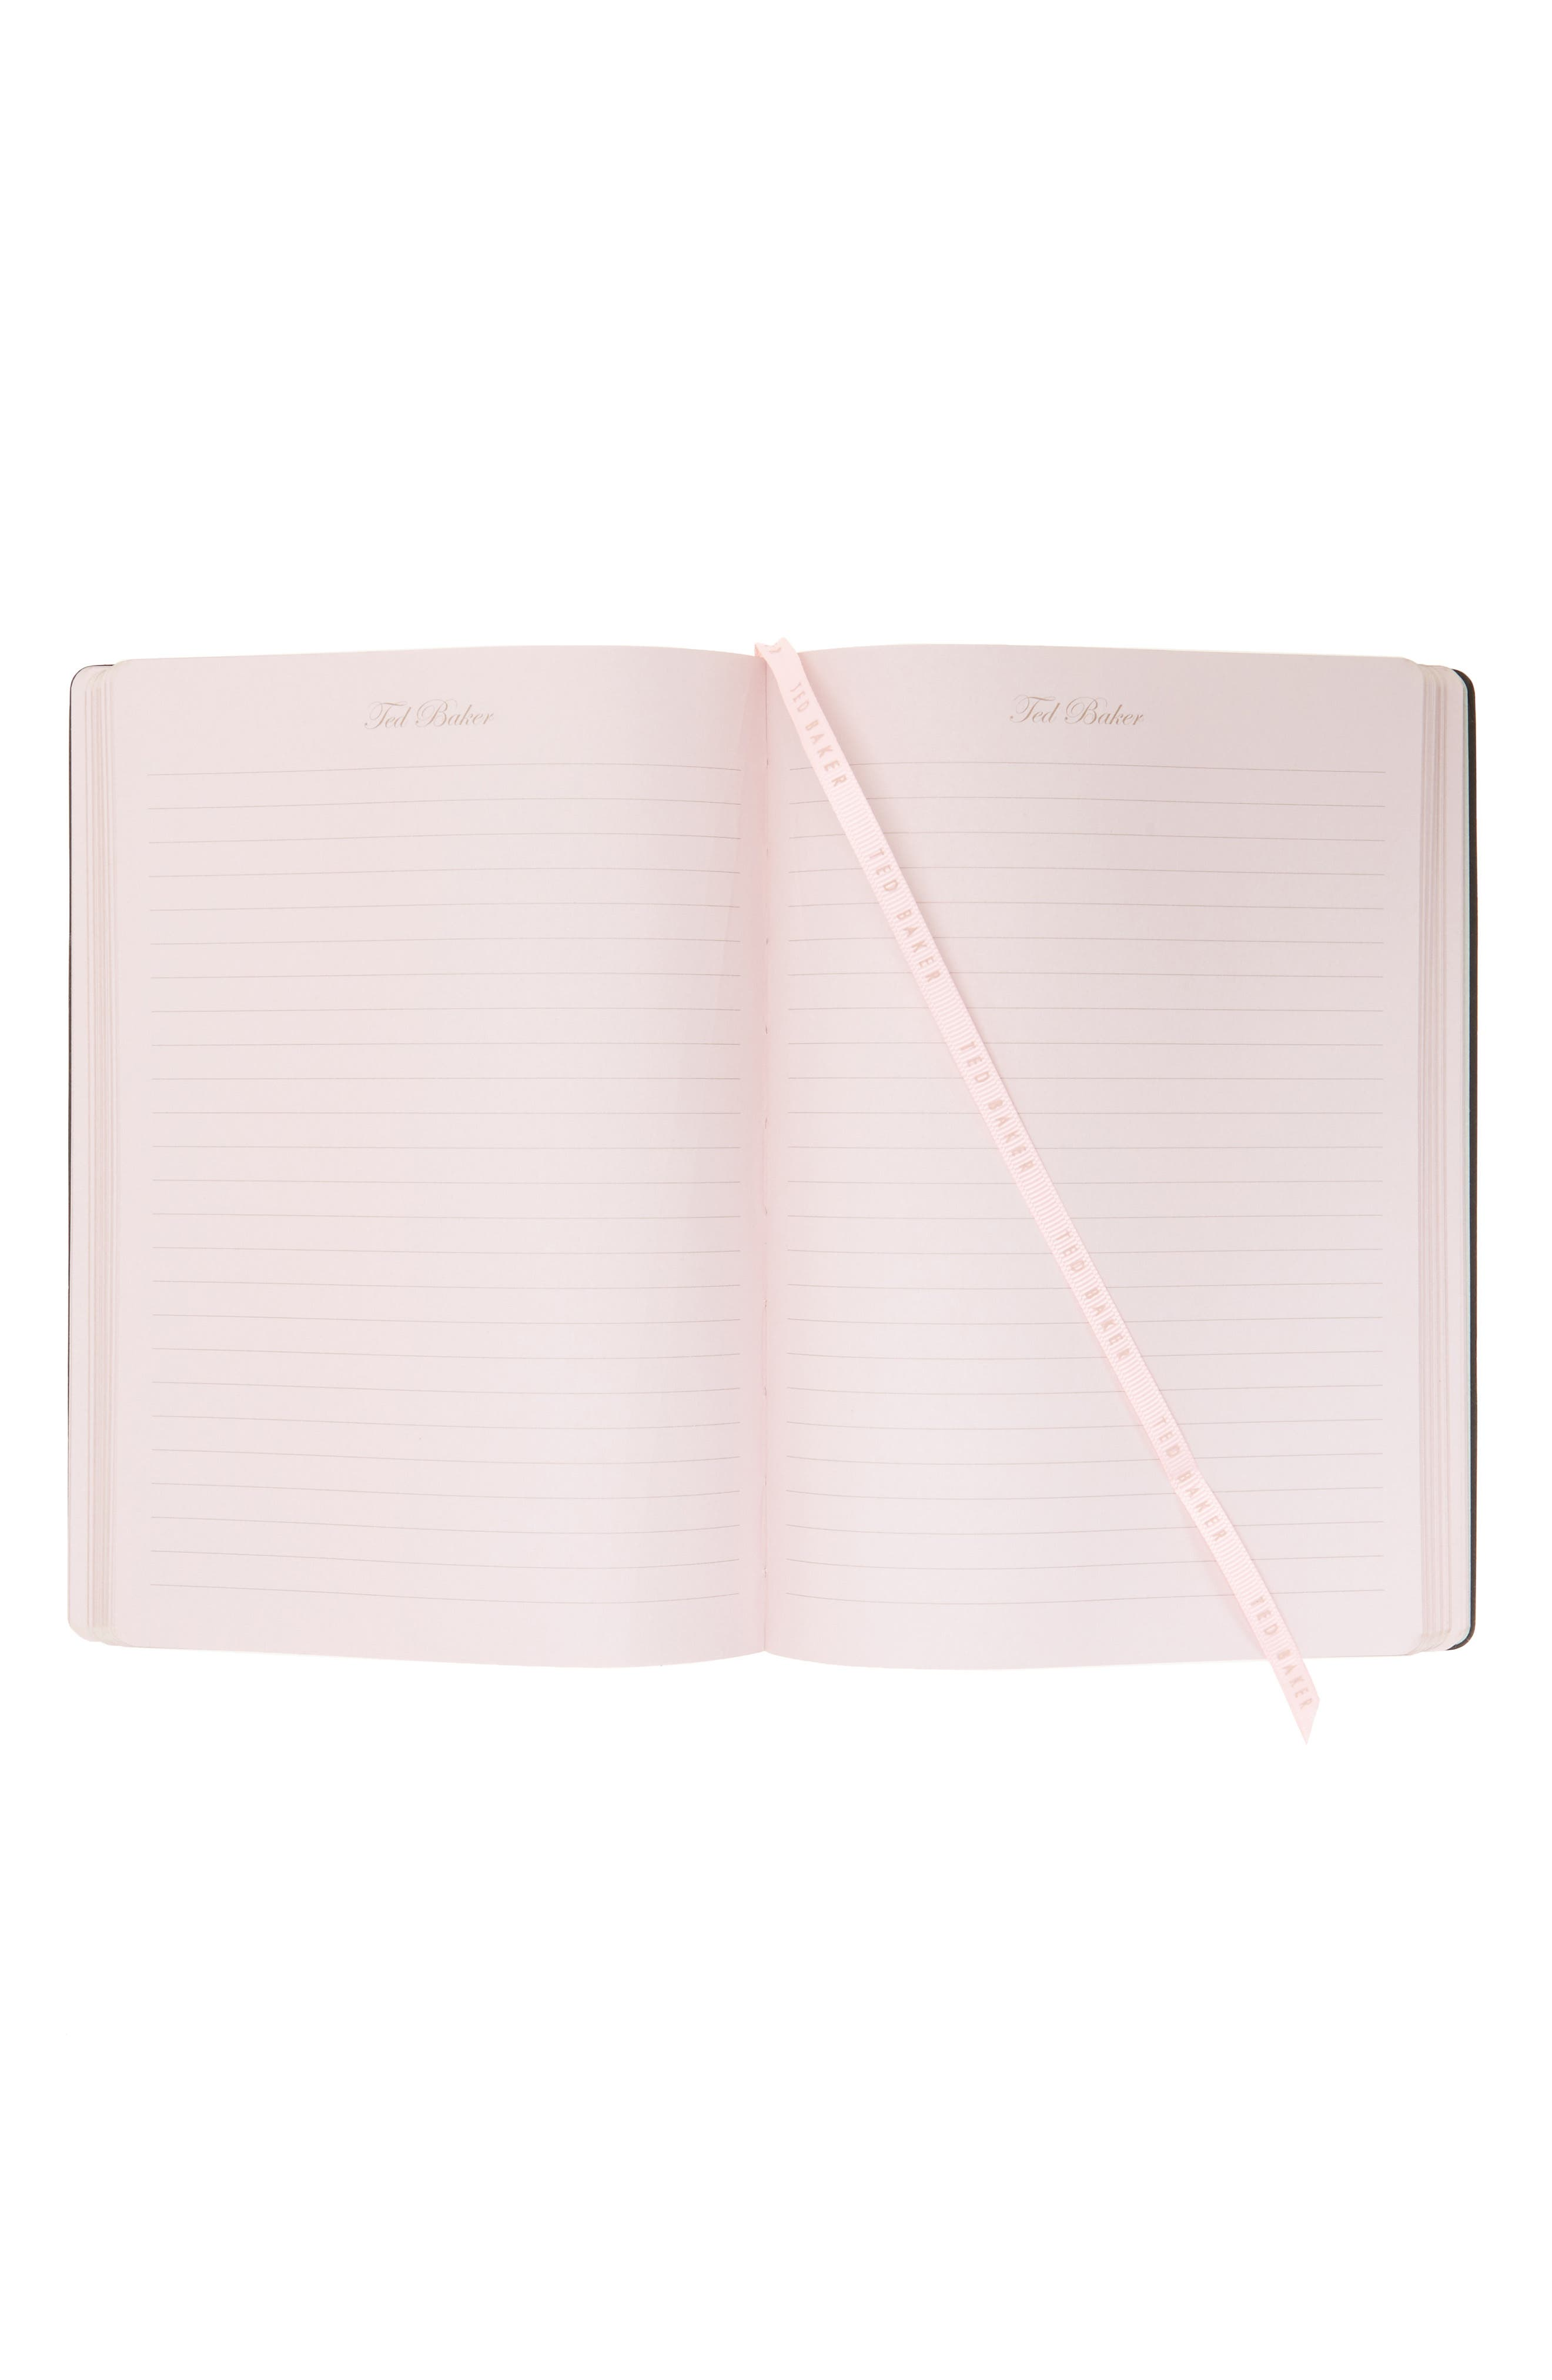 Wild and Wolf x Ted Baker London In Ore of You Gemstone Notebook with Pencil,                             Alternate thumbnail 5, color,